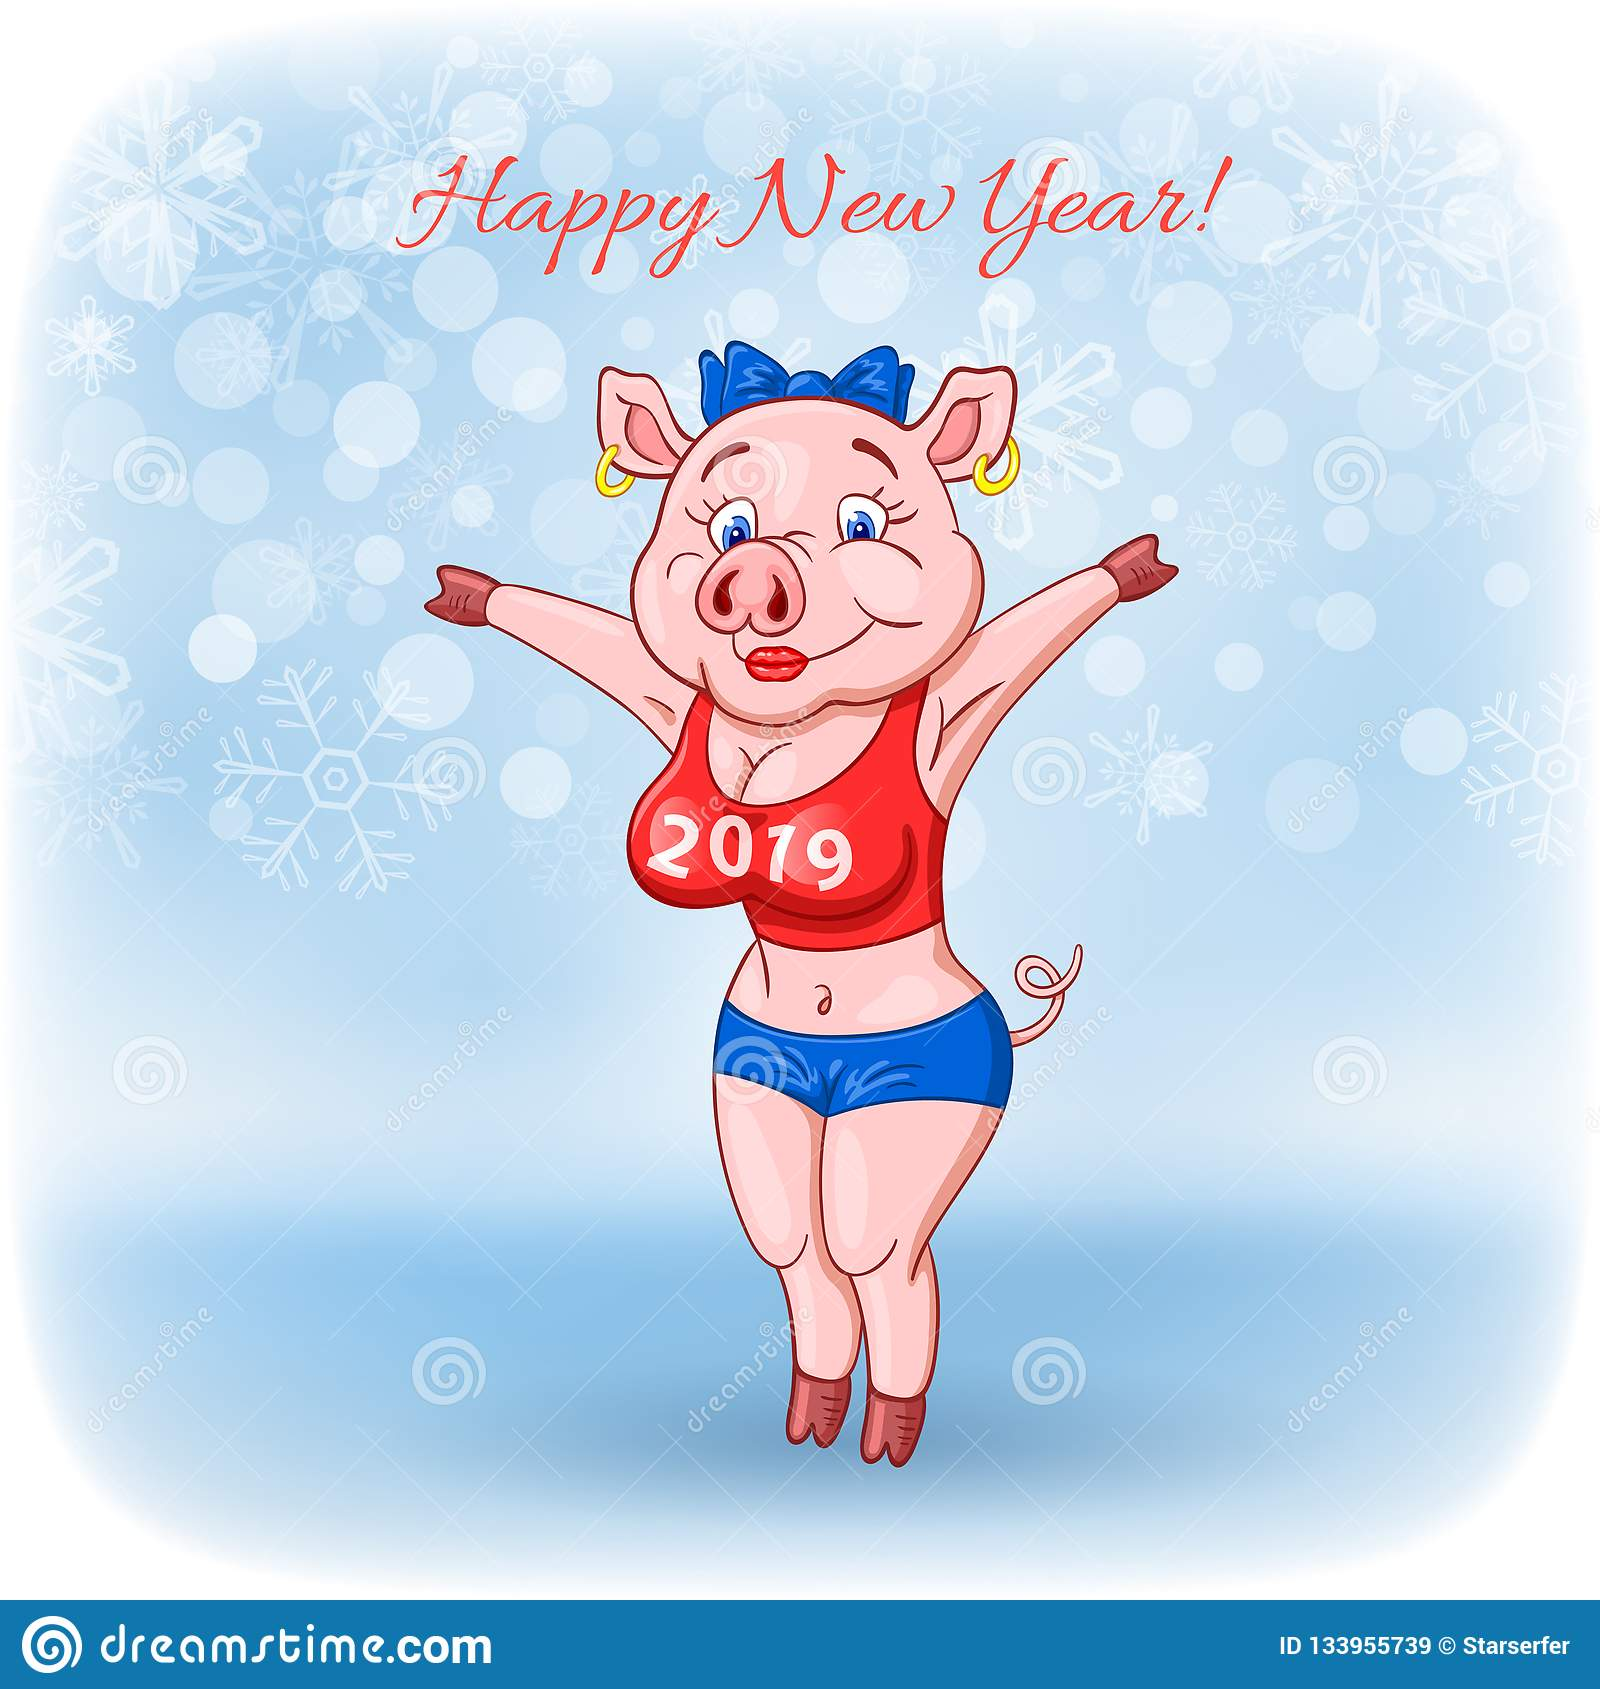 Cute cheerful female pig with 2019 inscription on her breast wishes a happy New Year